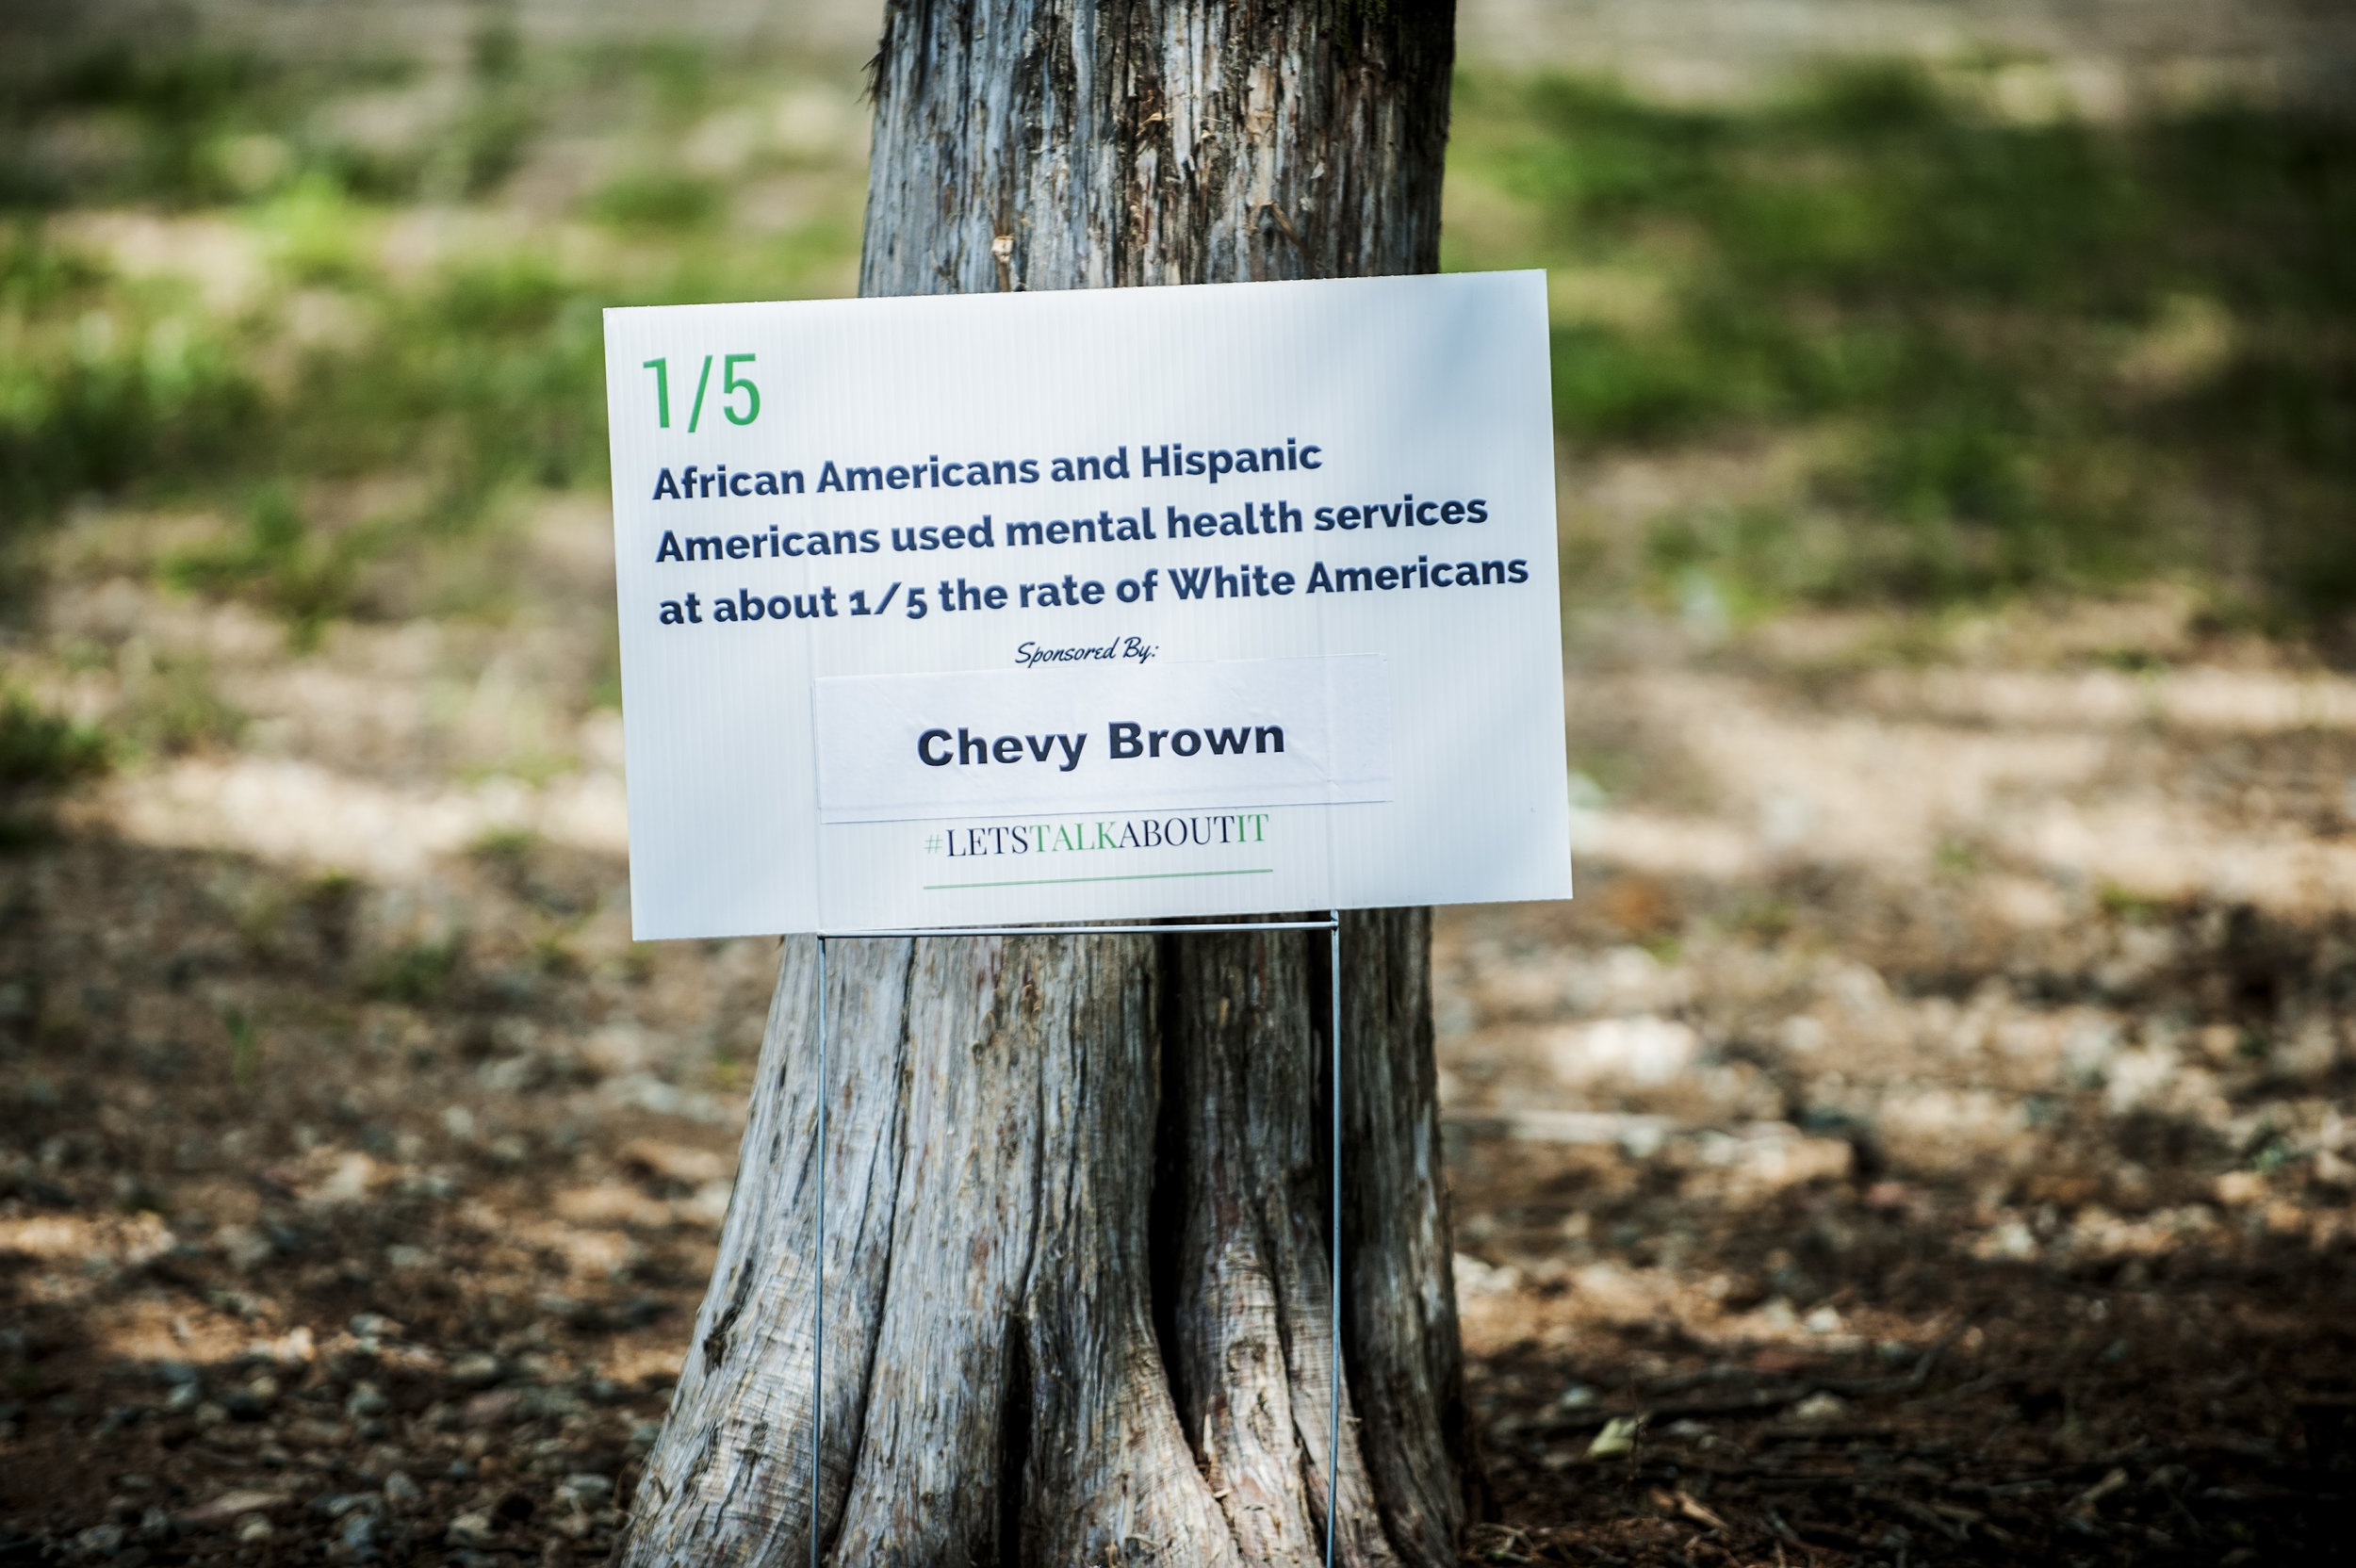 2nd Annual Let's Talk About It Mental Health Awareness Walk @ Park Rd Park 5-20-17 by Jon Strayhorn 179.jpg